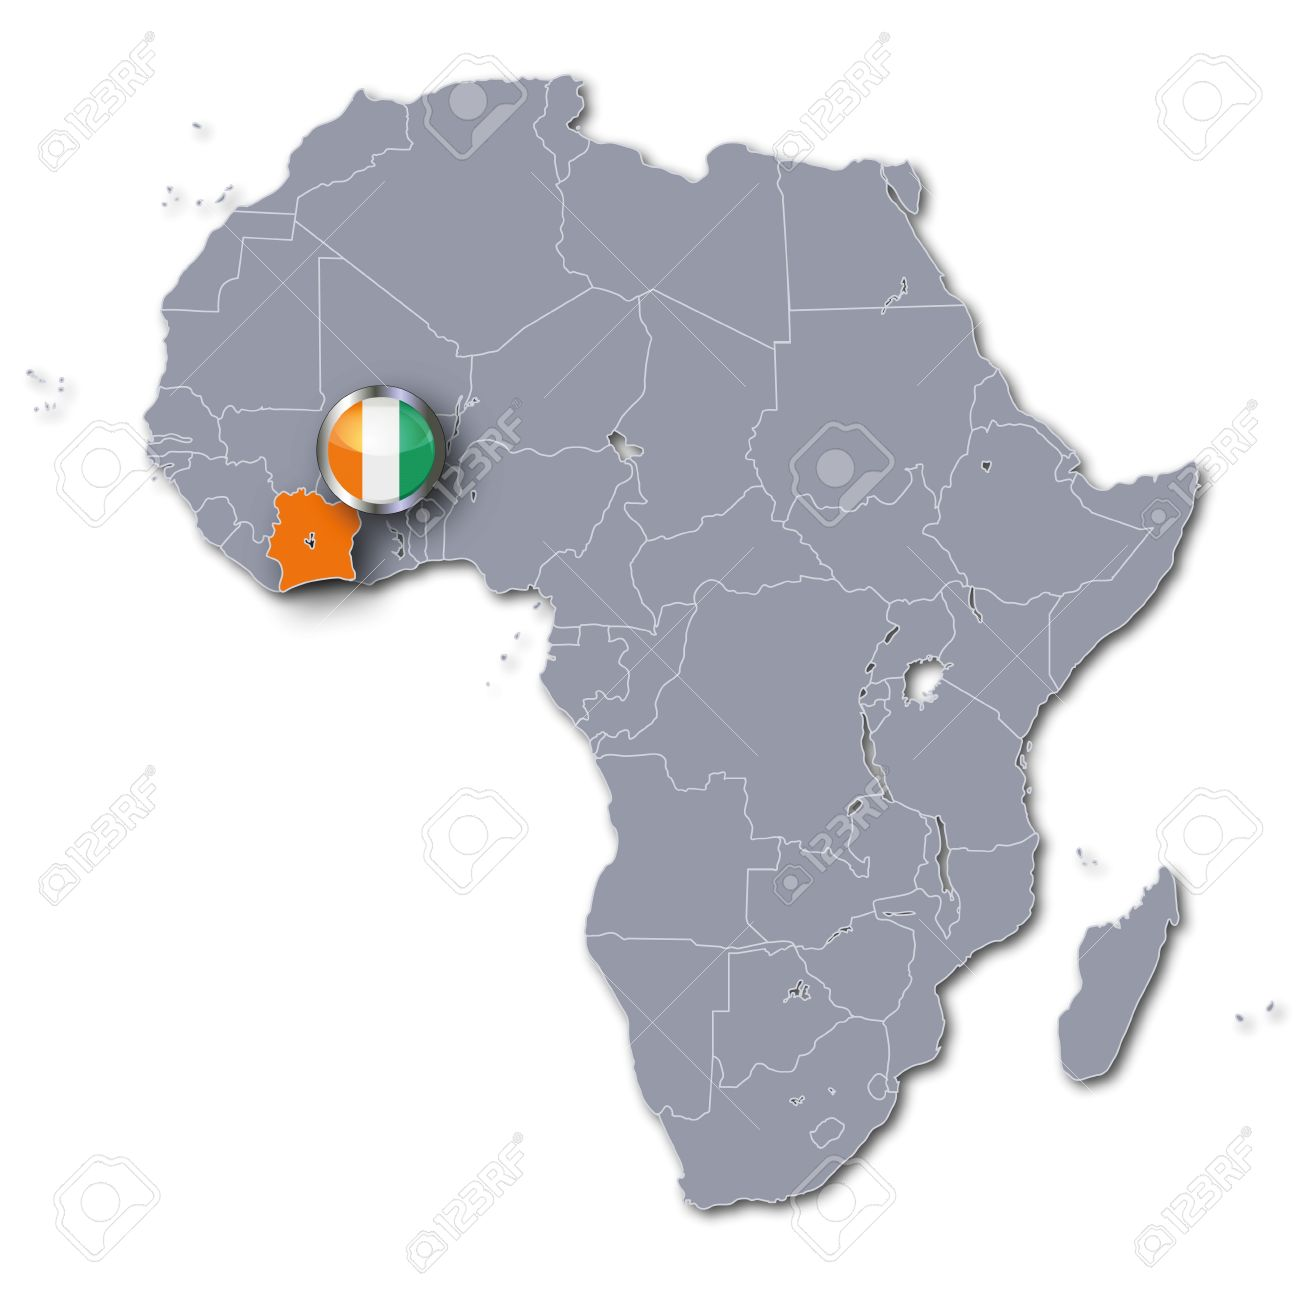 Ivory Coast In Africa Map on